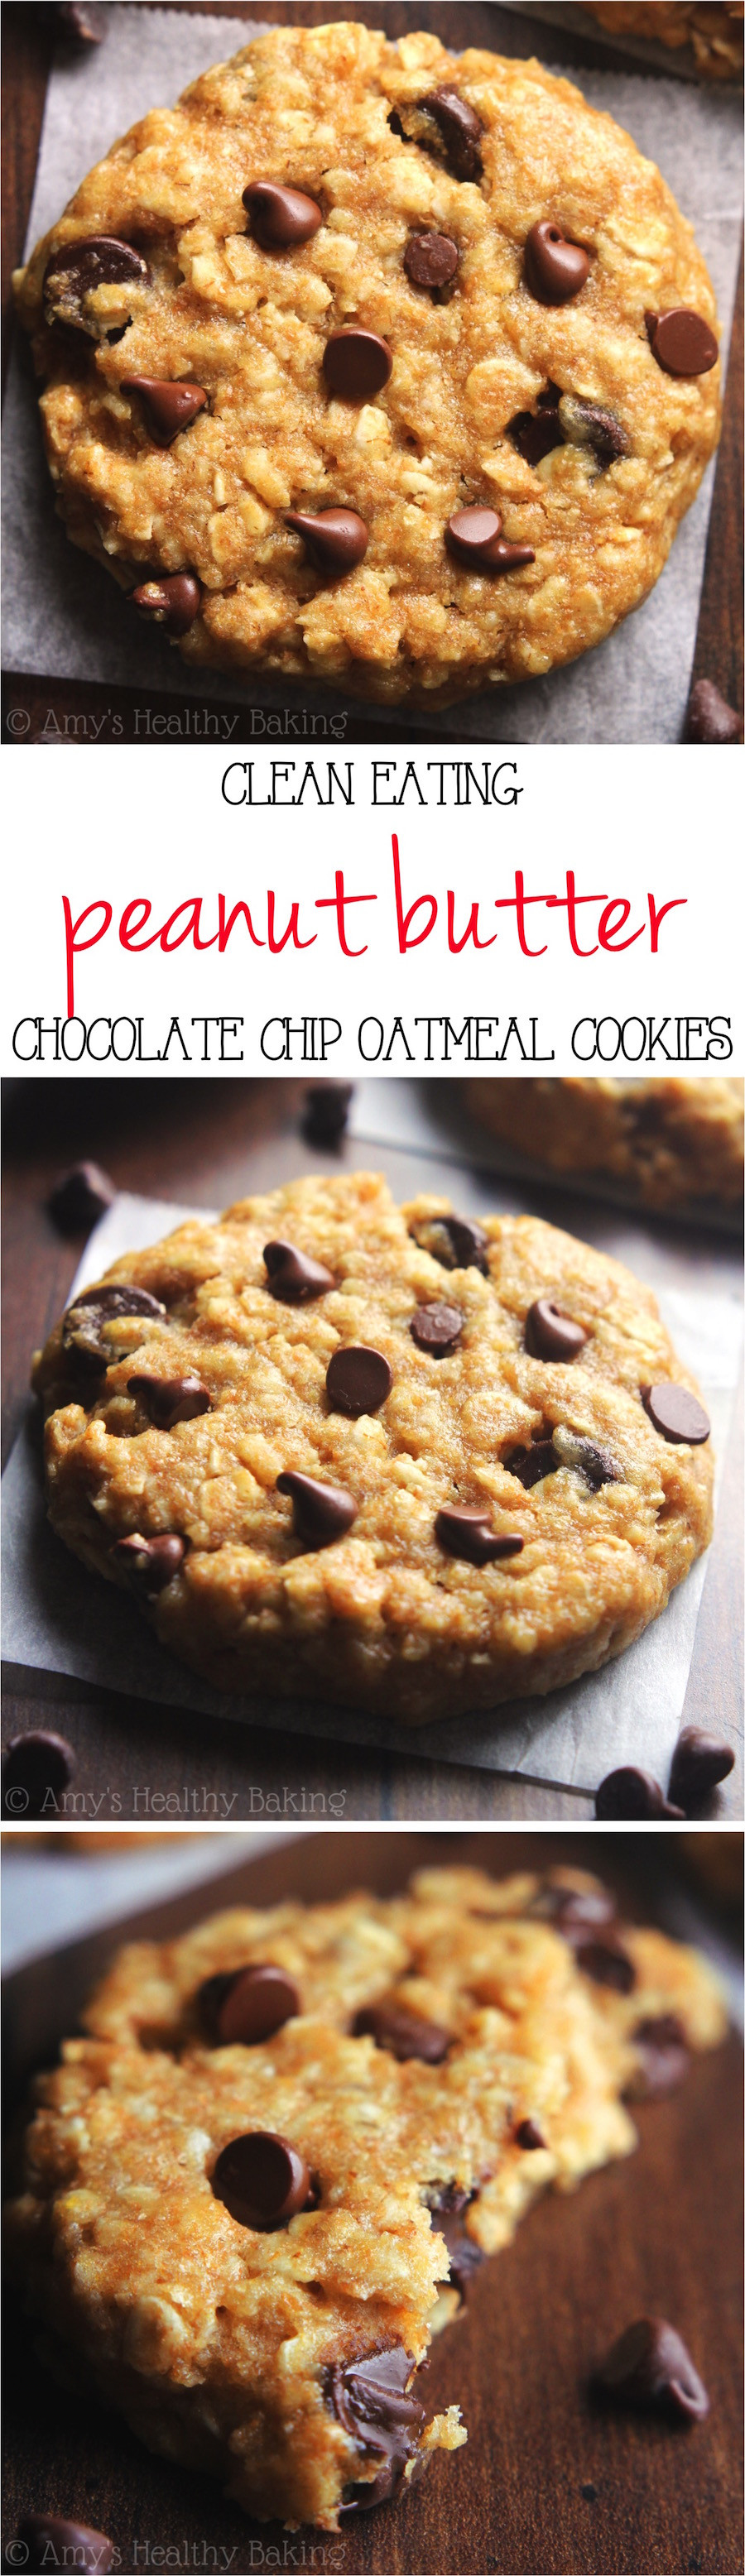 Healthy Peanut Butter Oatmeal Chocolate Chip Cookies  healthy oatmeal peanut butter chocolate chip cookies recipe